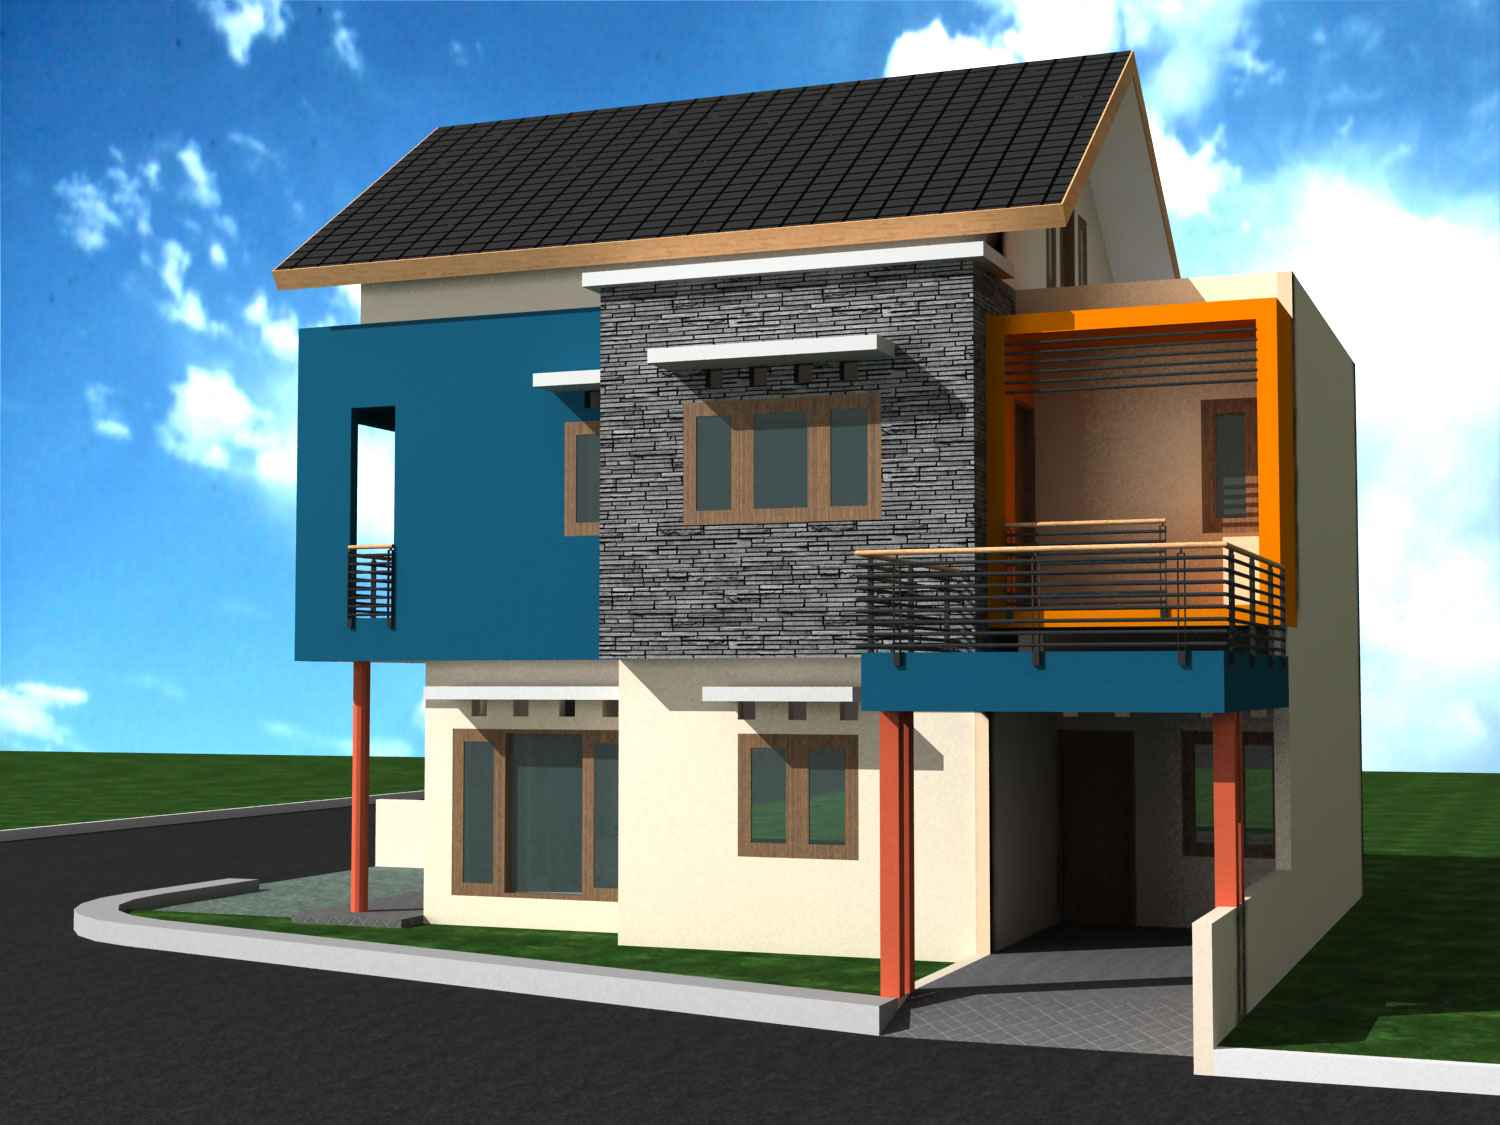 minimalist house design concept - Simple House Design With Second Floor